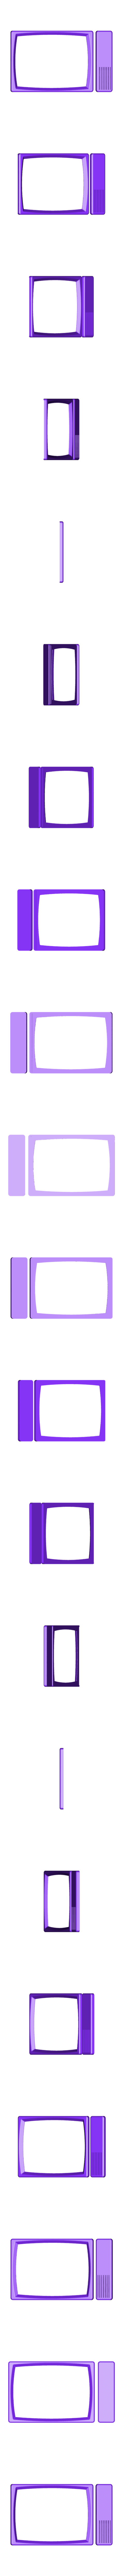 TV_picture_outline.STL Download free STL file Multi-Color TV Picture Frame • 3D printable design, MosaicManufacturing